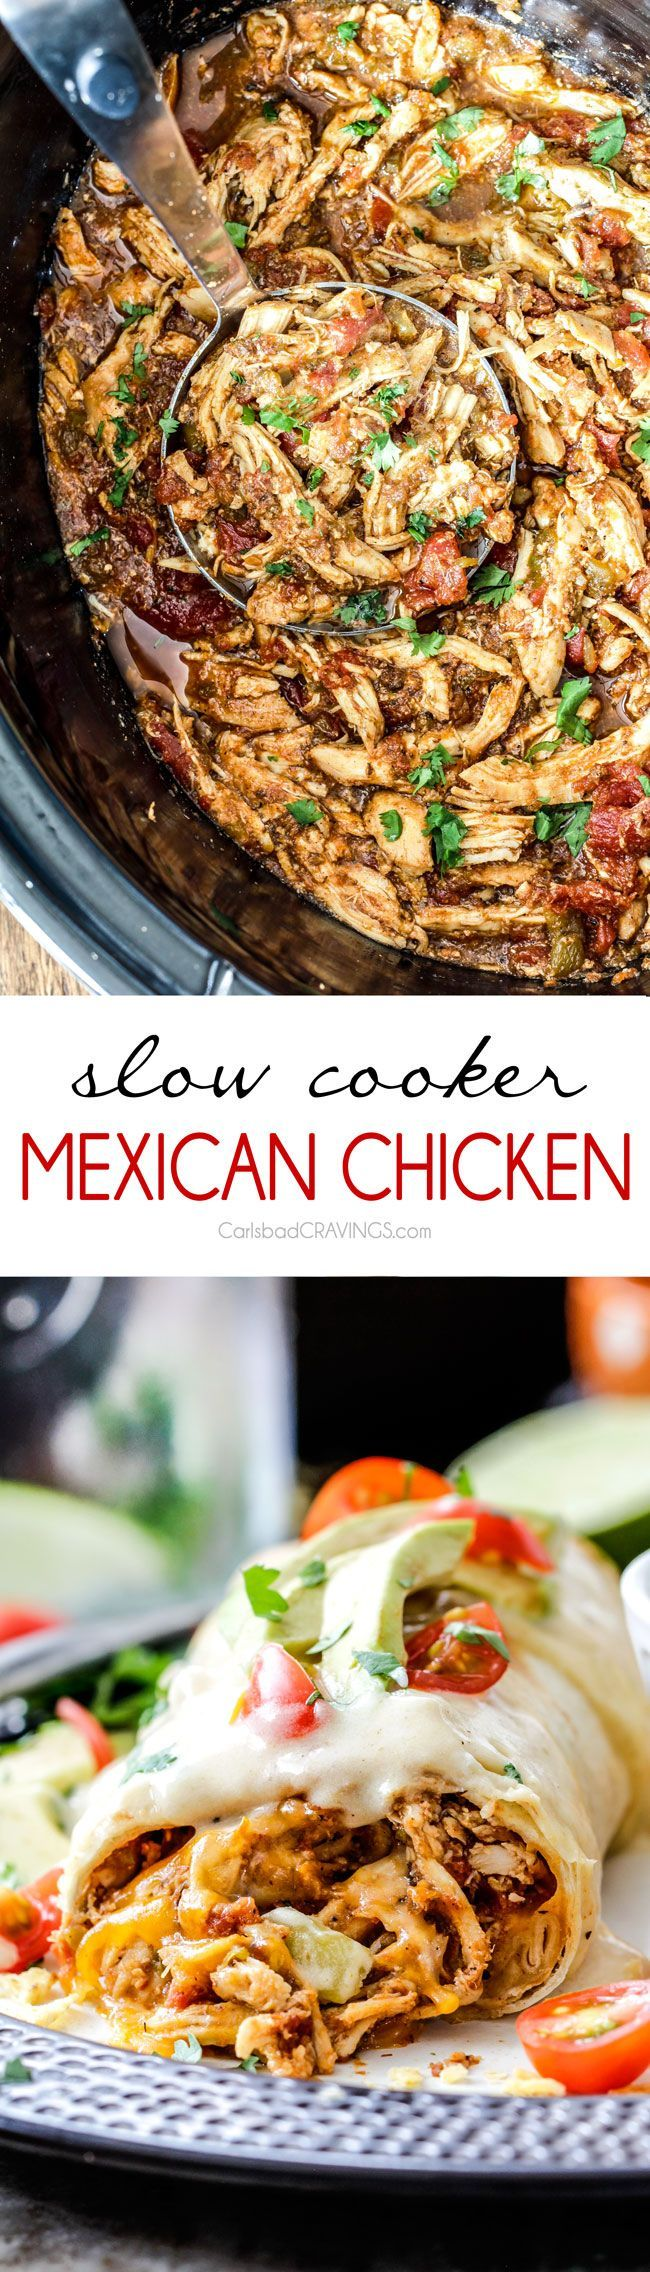 Chicken simmered w/Mexican spices, salsa & green chilies -  perfect for tacos, burritos, tostadas, salads, etc